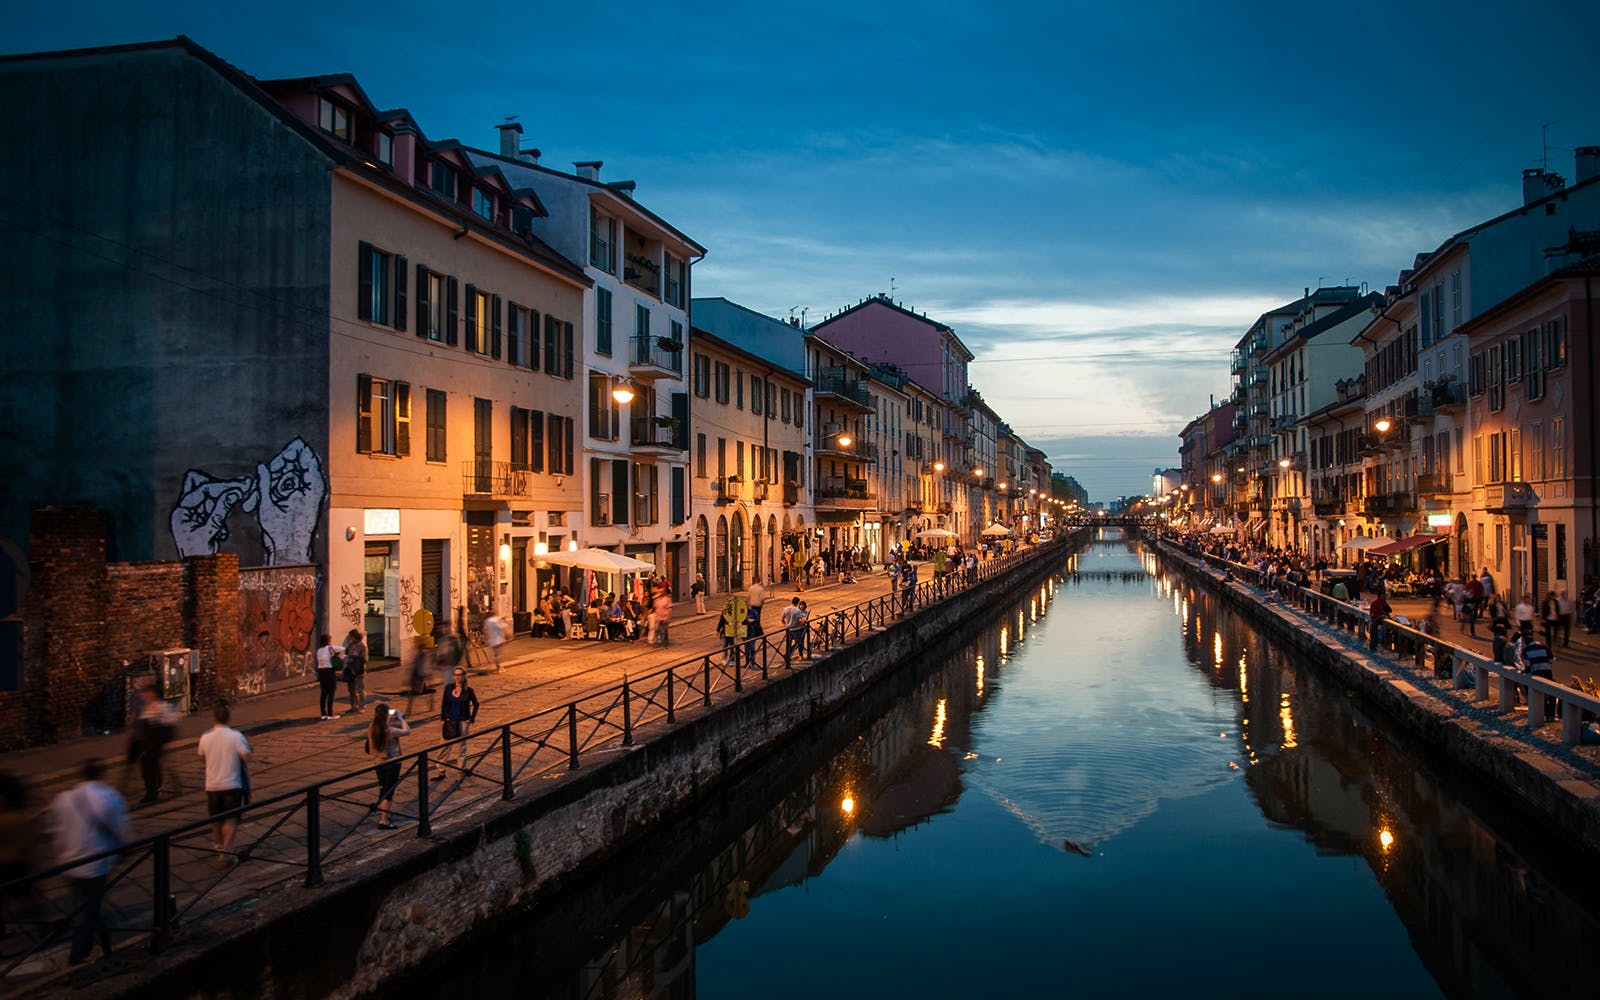 milan food and wine experience on the ancient canals-1